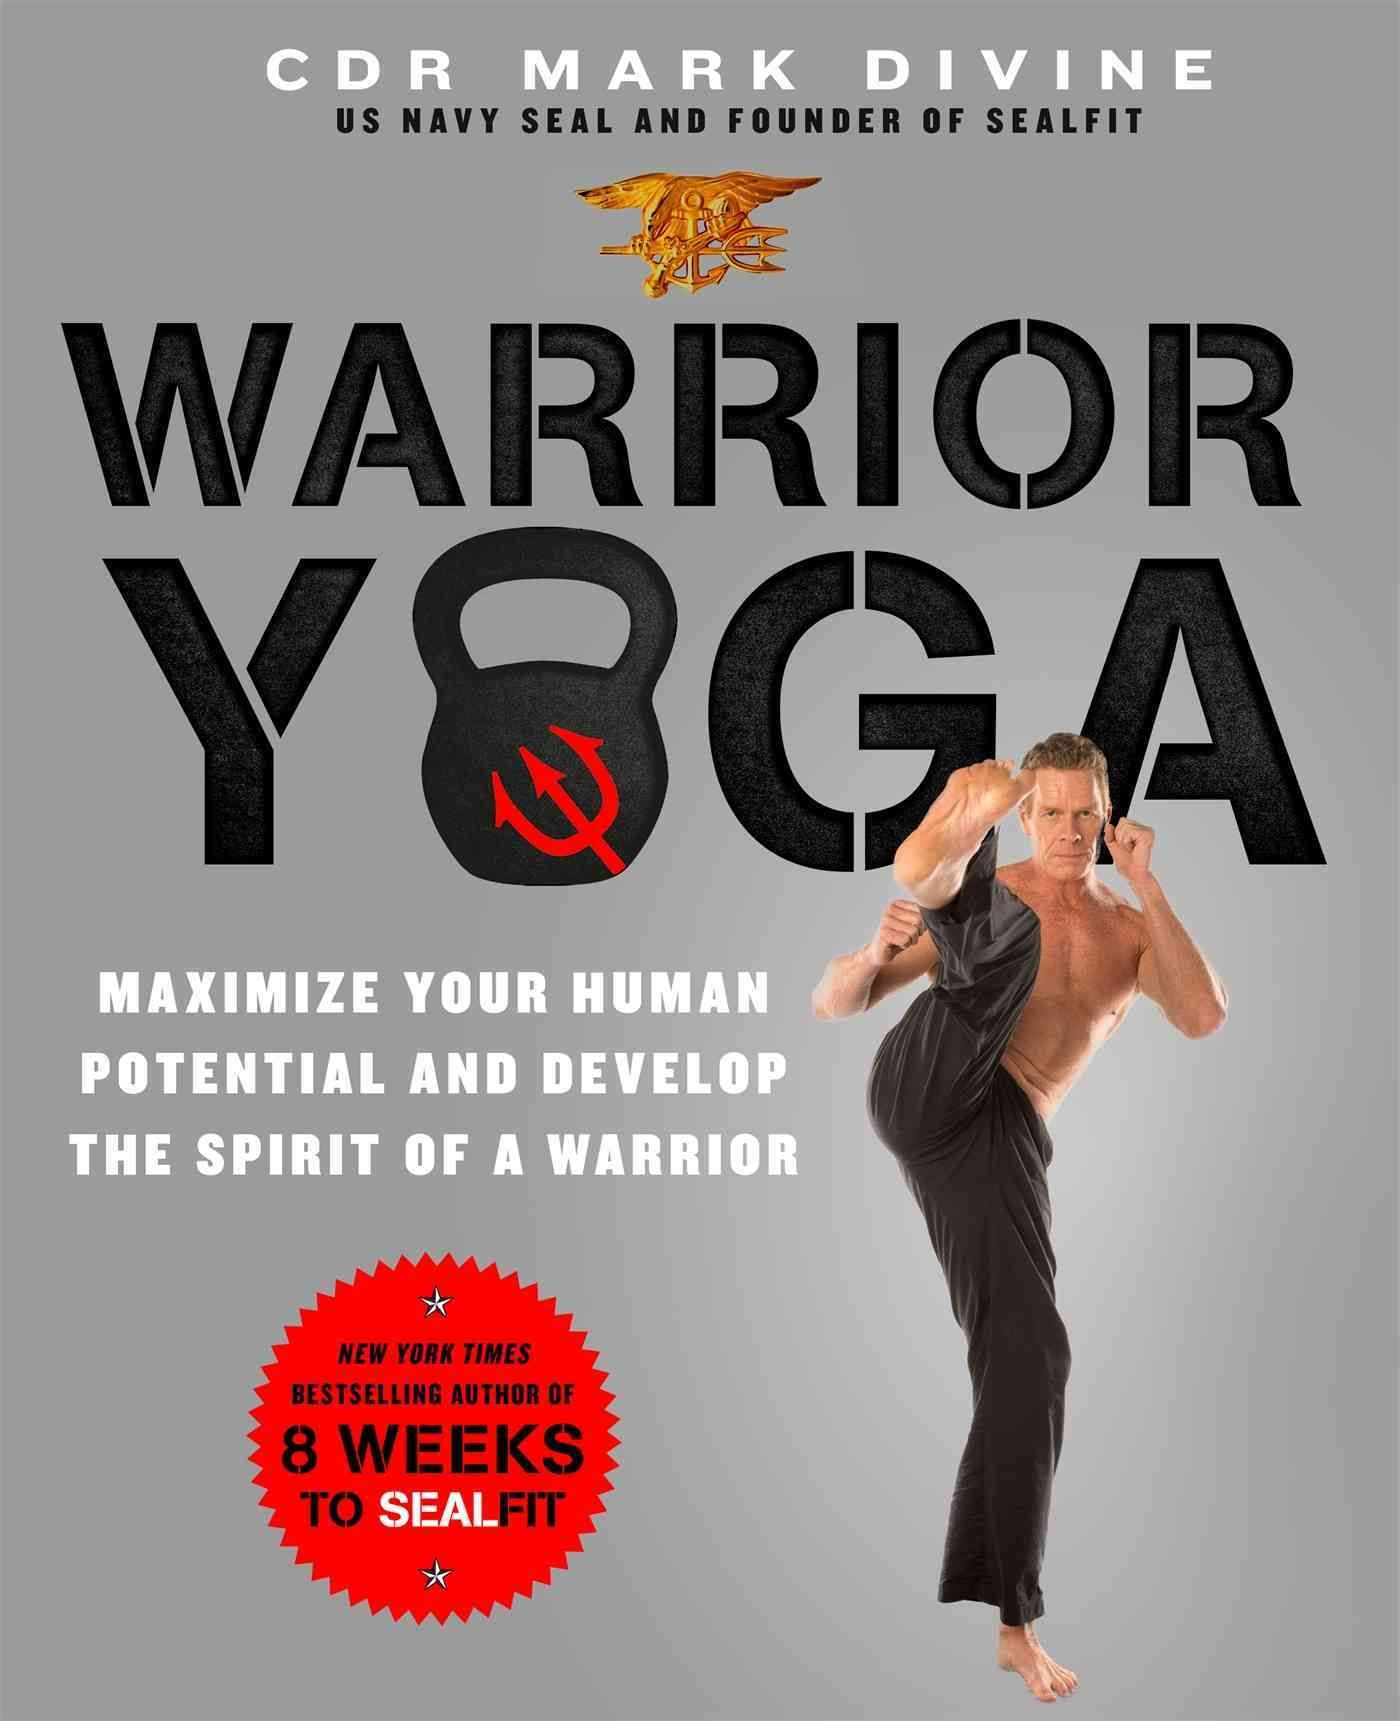 Kokoro Yoga Maximize Your Human Potential and Develop the Spirit of